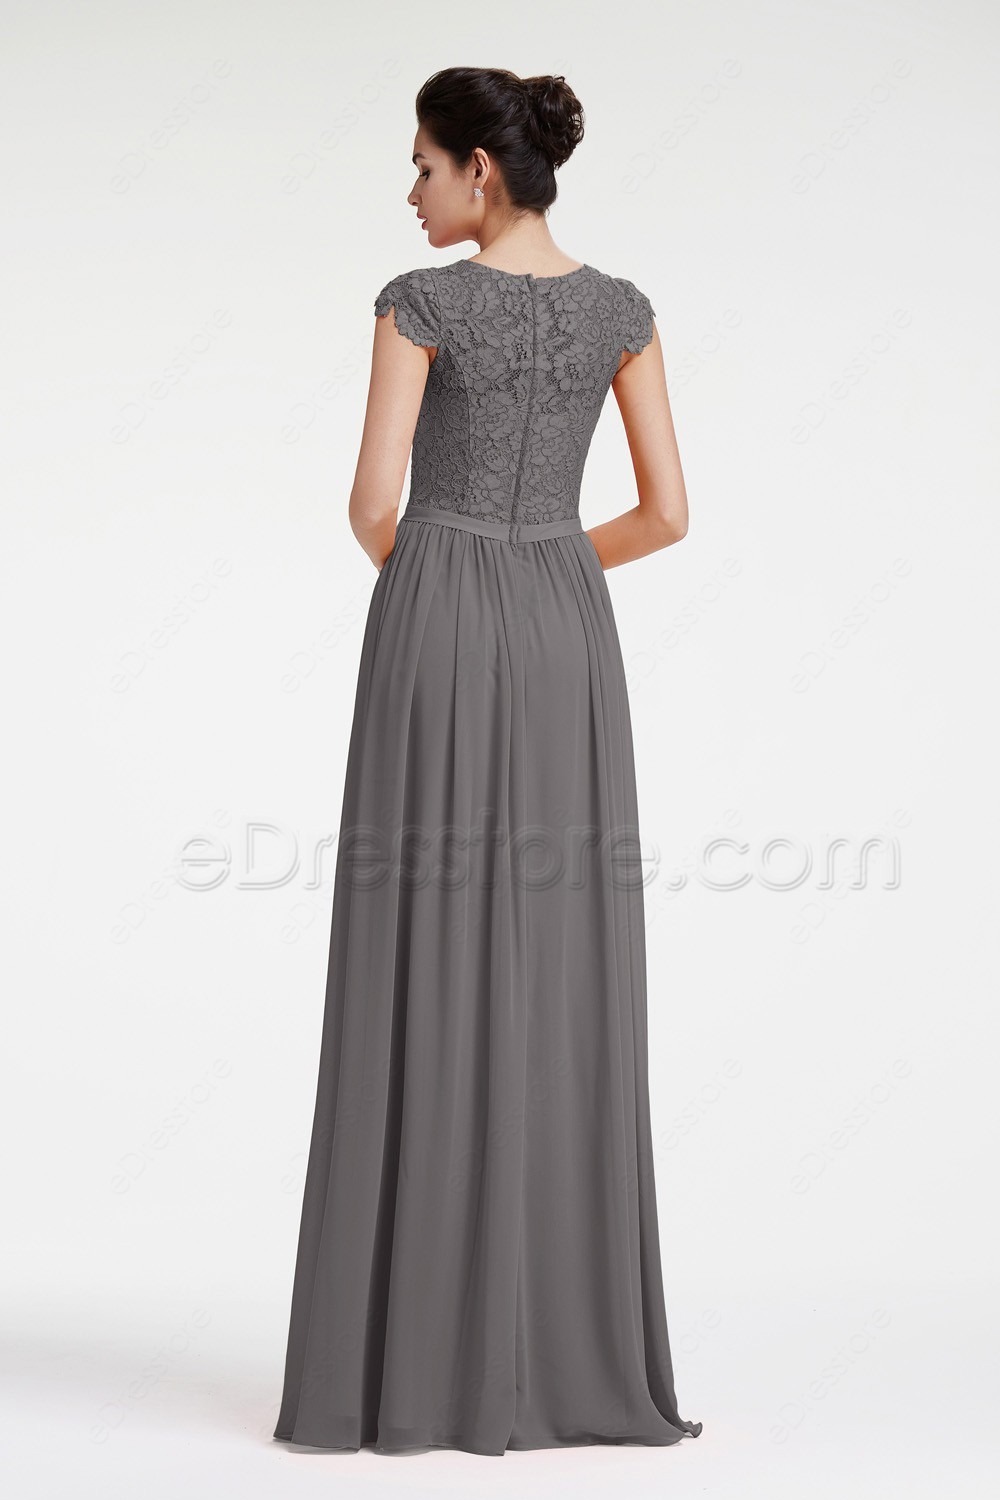 Wedding Grey Bridesmaid Dress modest charcoal grey bridesmaid dresses cap sleeves this is a made to order item in get better fit lease take your measurements around bust waist and hip choose size from our